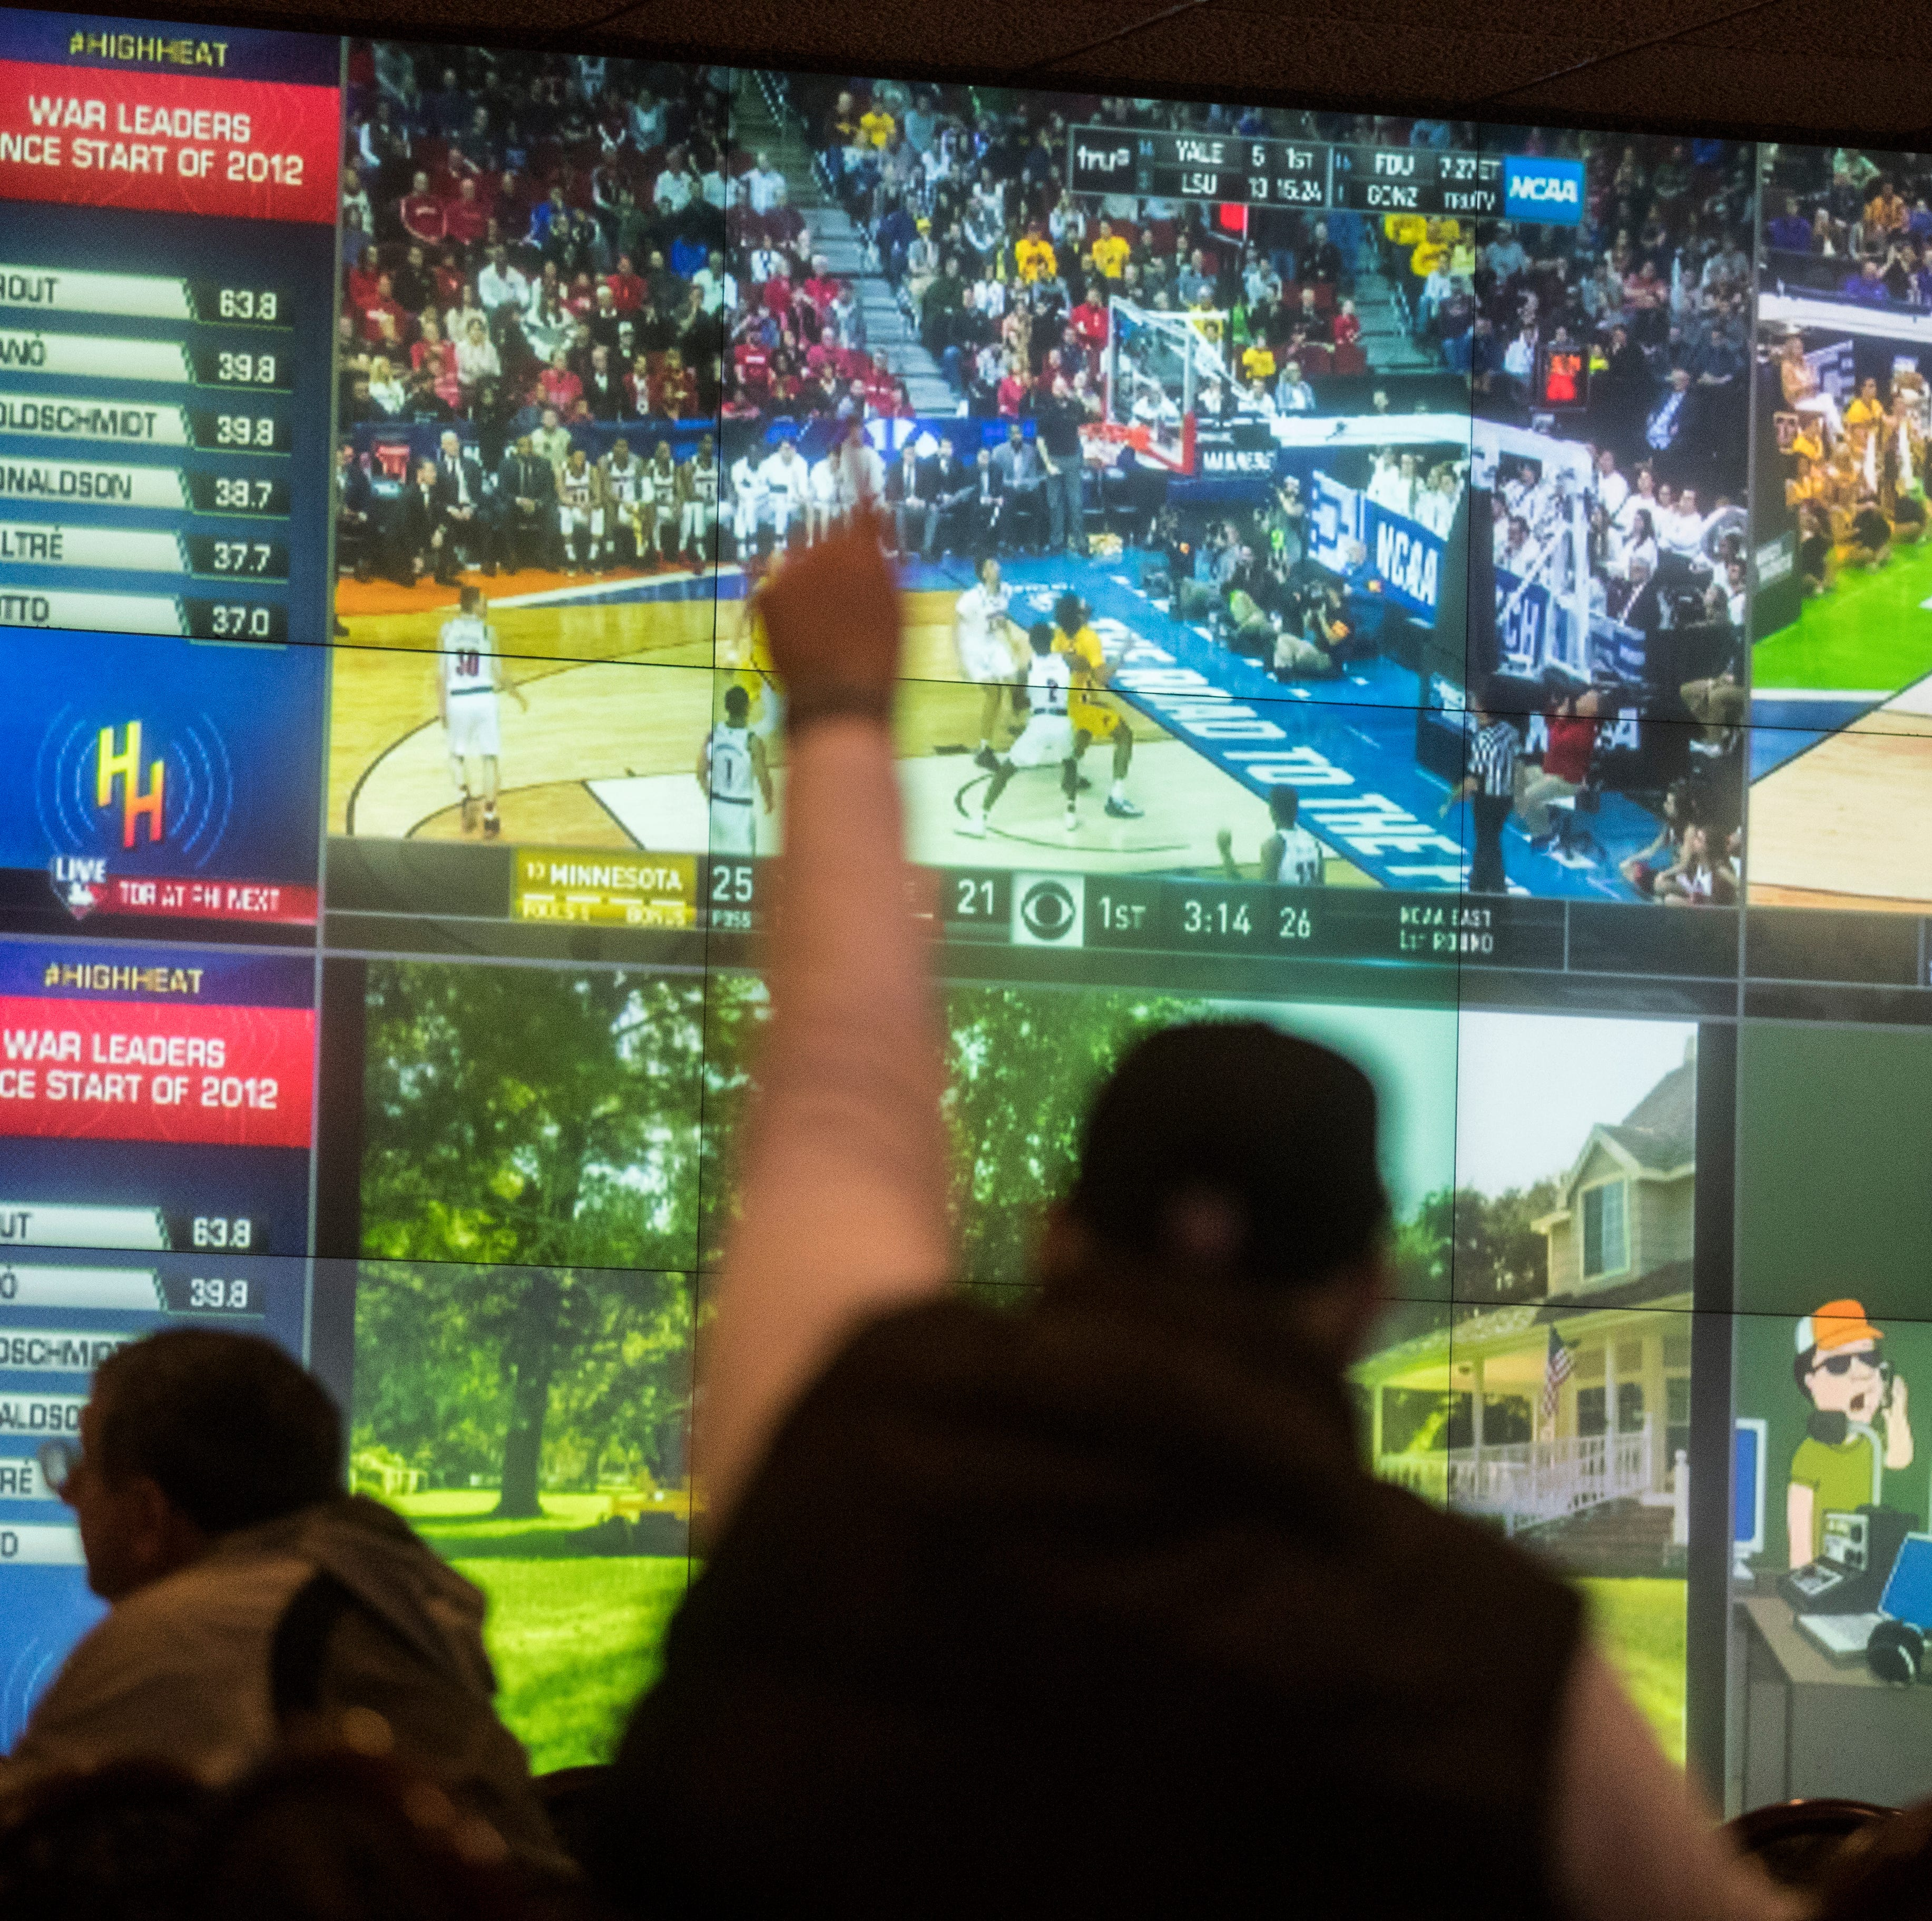 No need for Vegas: NCAA Basketball Tournament brings bettors to Delaware Park